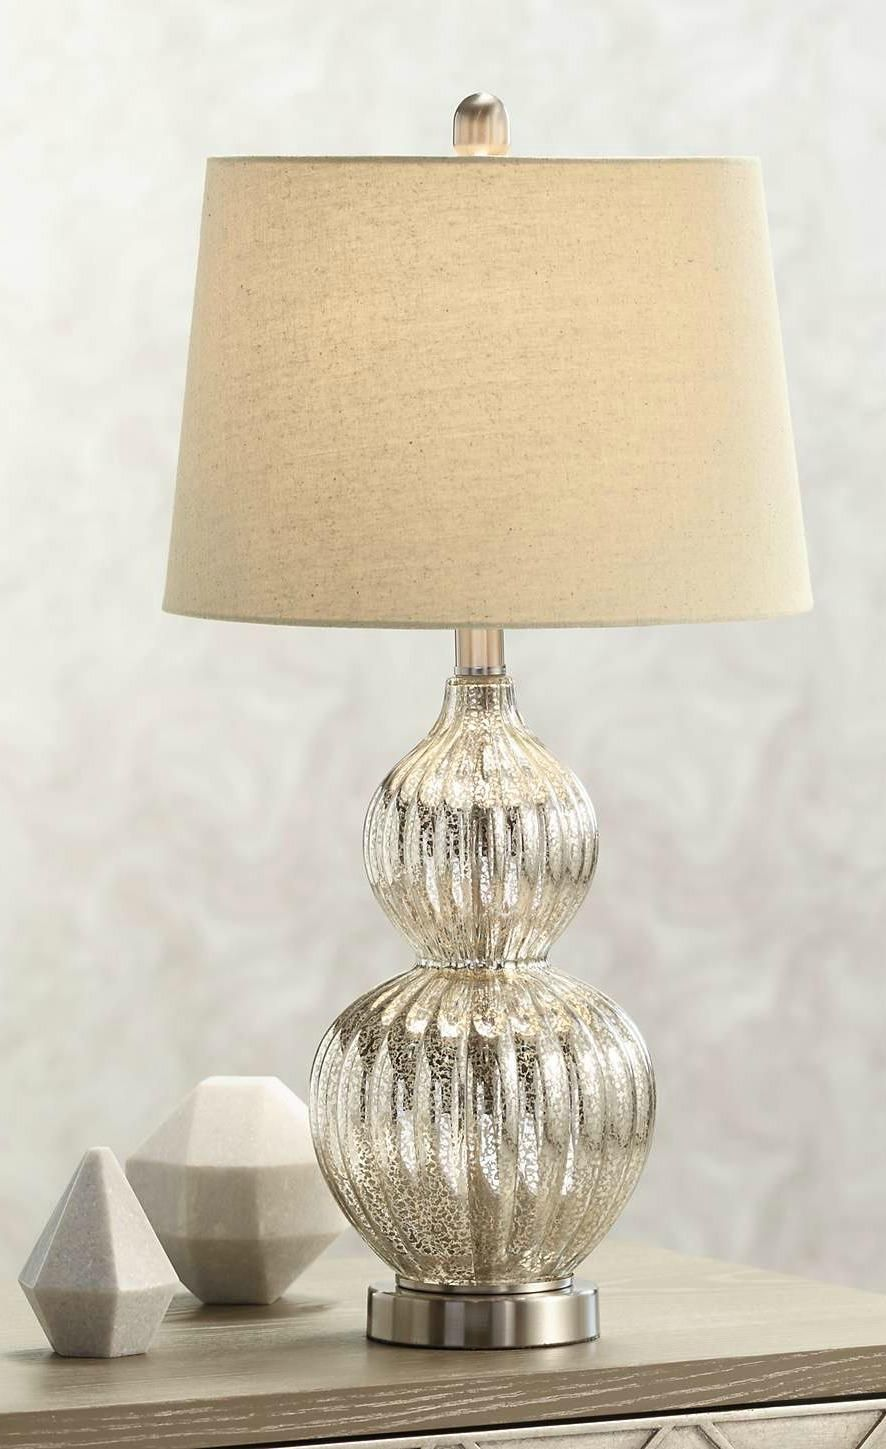 Lili Fluted Mercury Glass Table Lamp 8h816 Lamps Plus In 2020 Mercury Glass Table Lamp Lamp Table Lamp